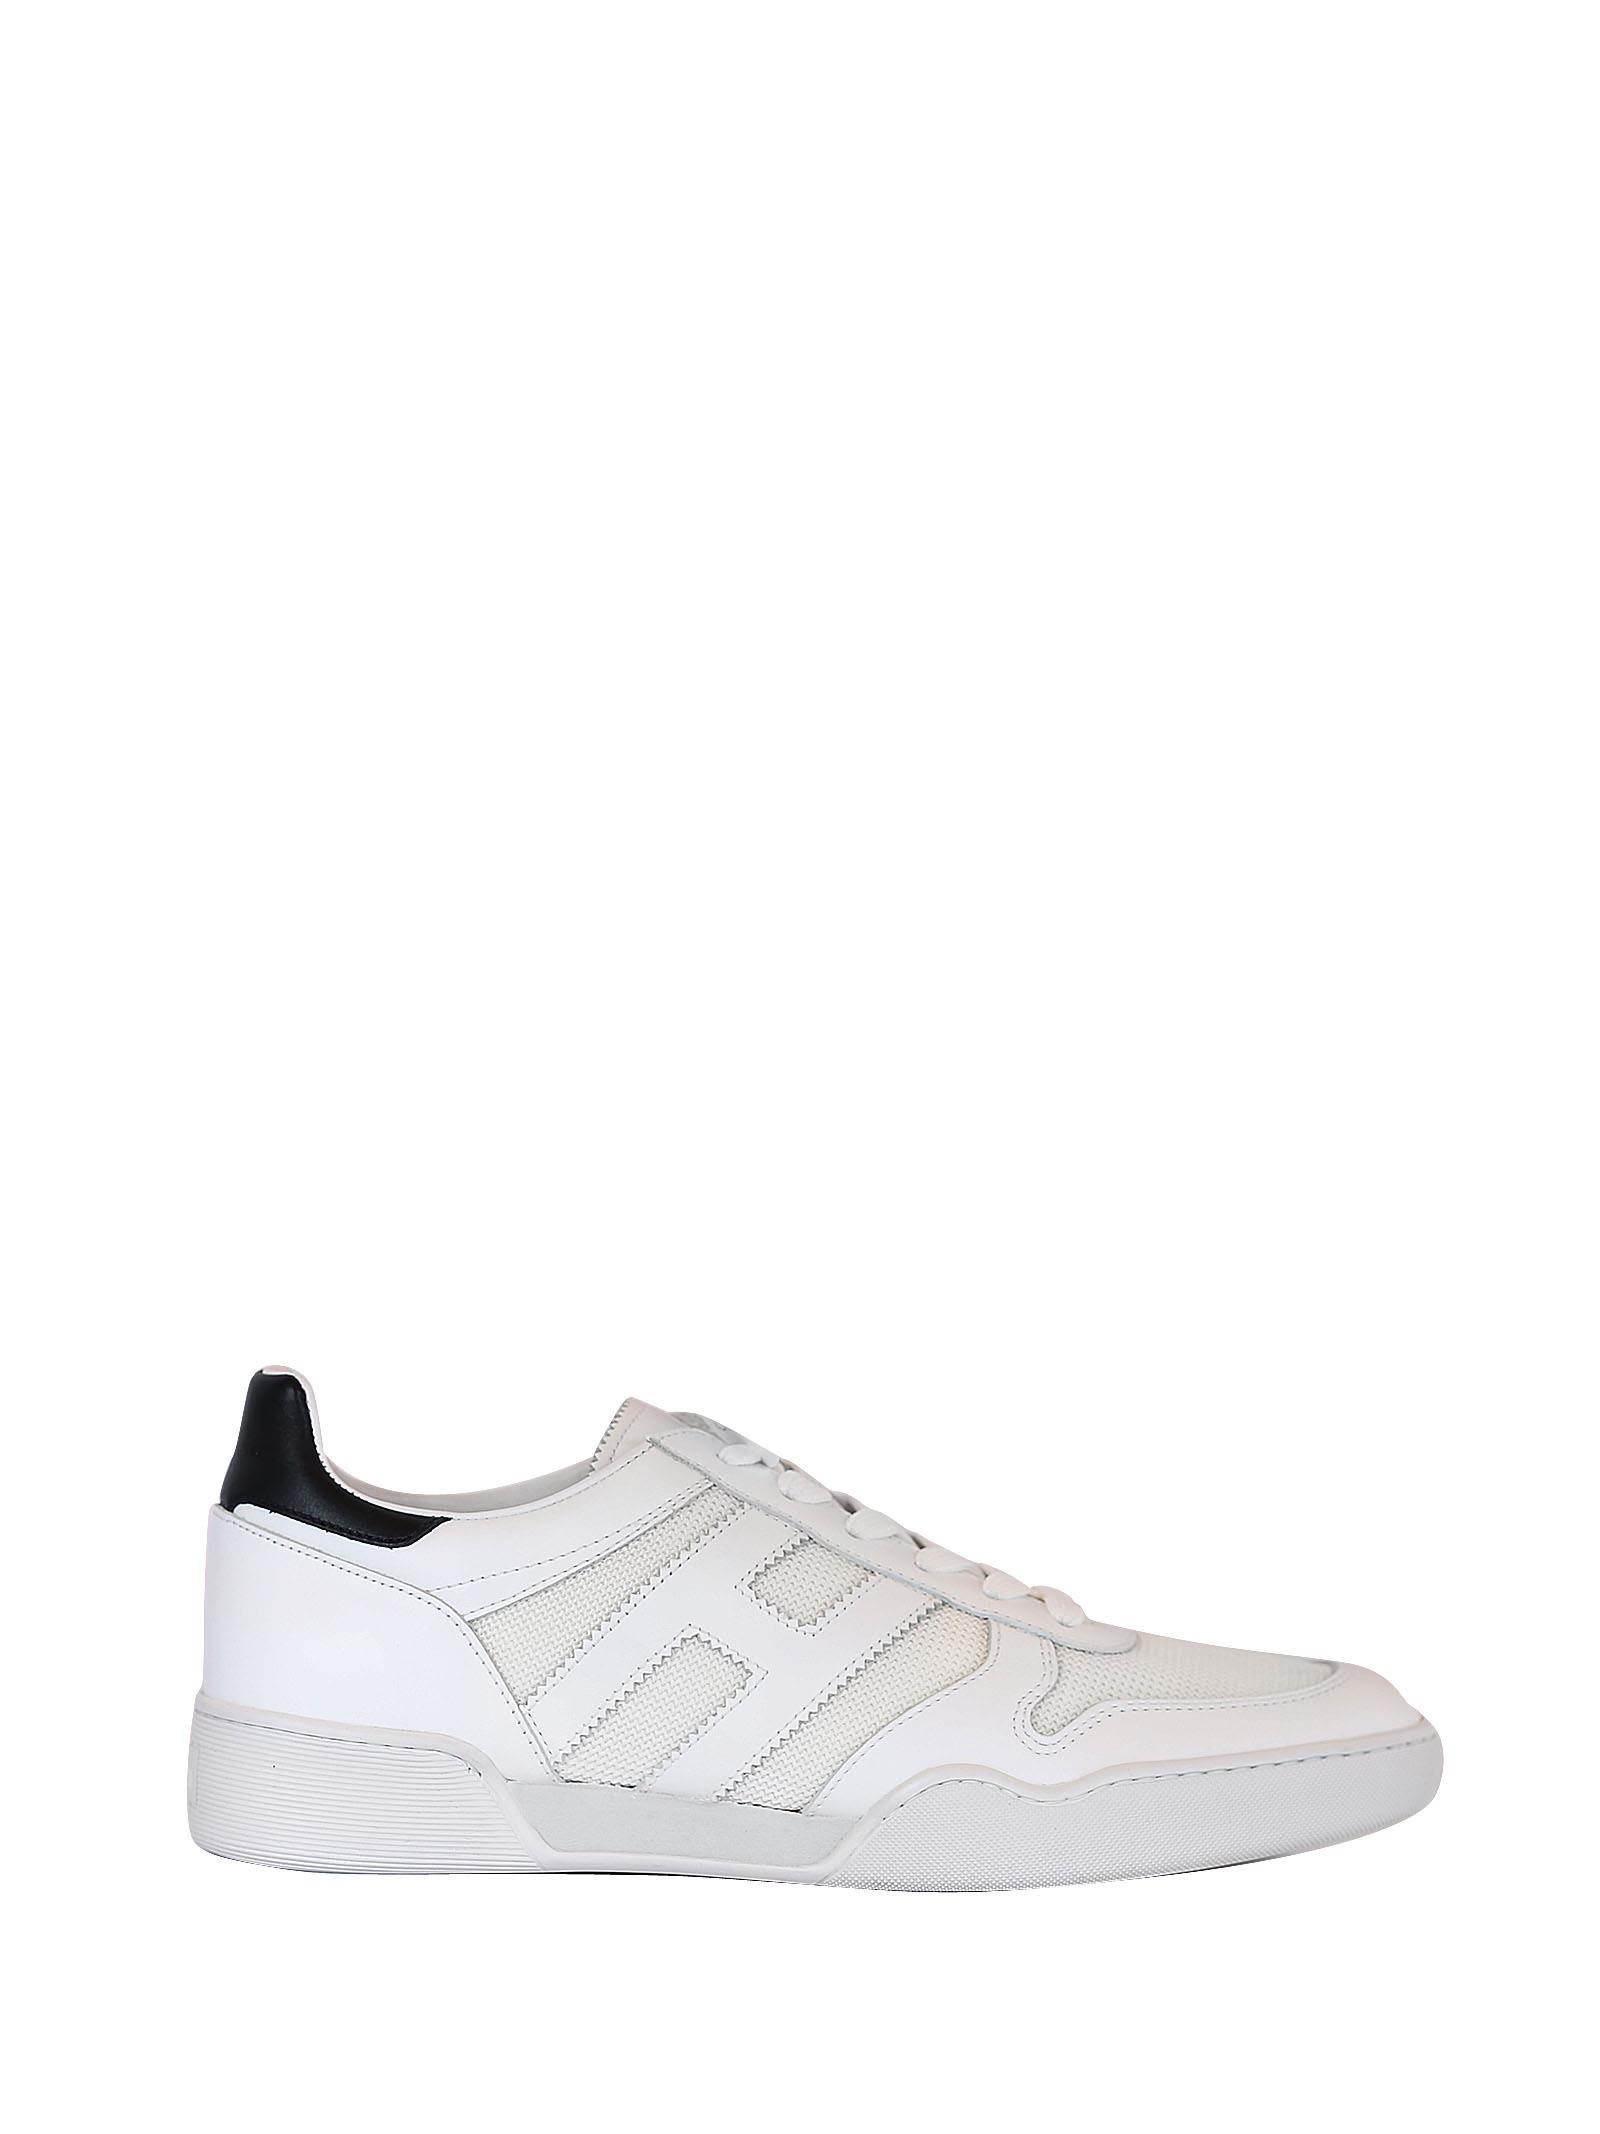 Hogan Sneakers H357